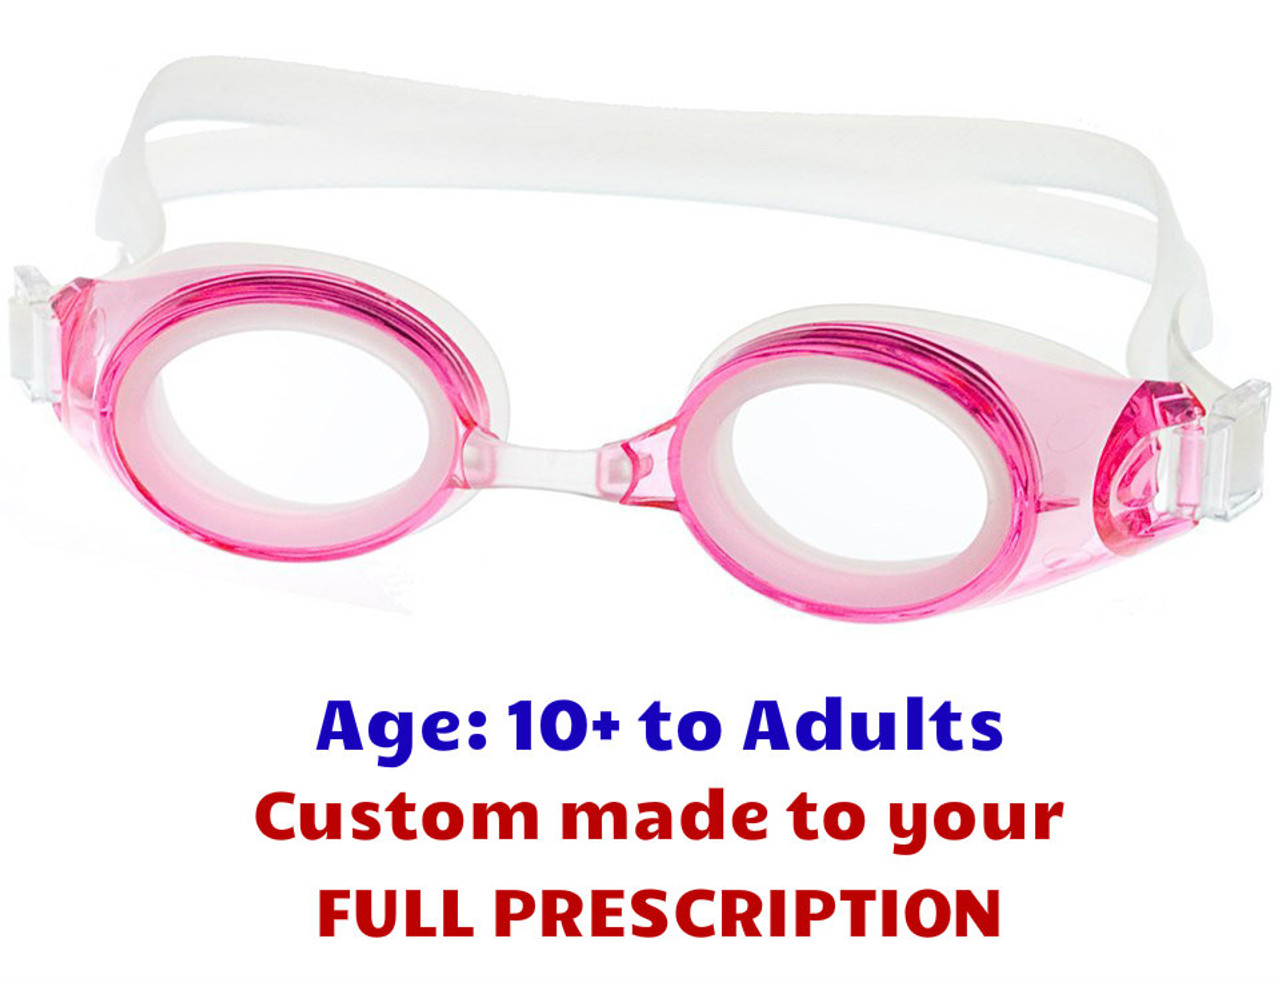 493352753b M2P Precription Swim Goggles Suitable for Ages 10 to Adults Pink